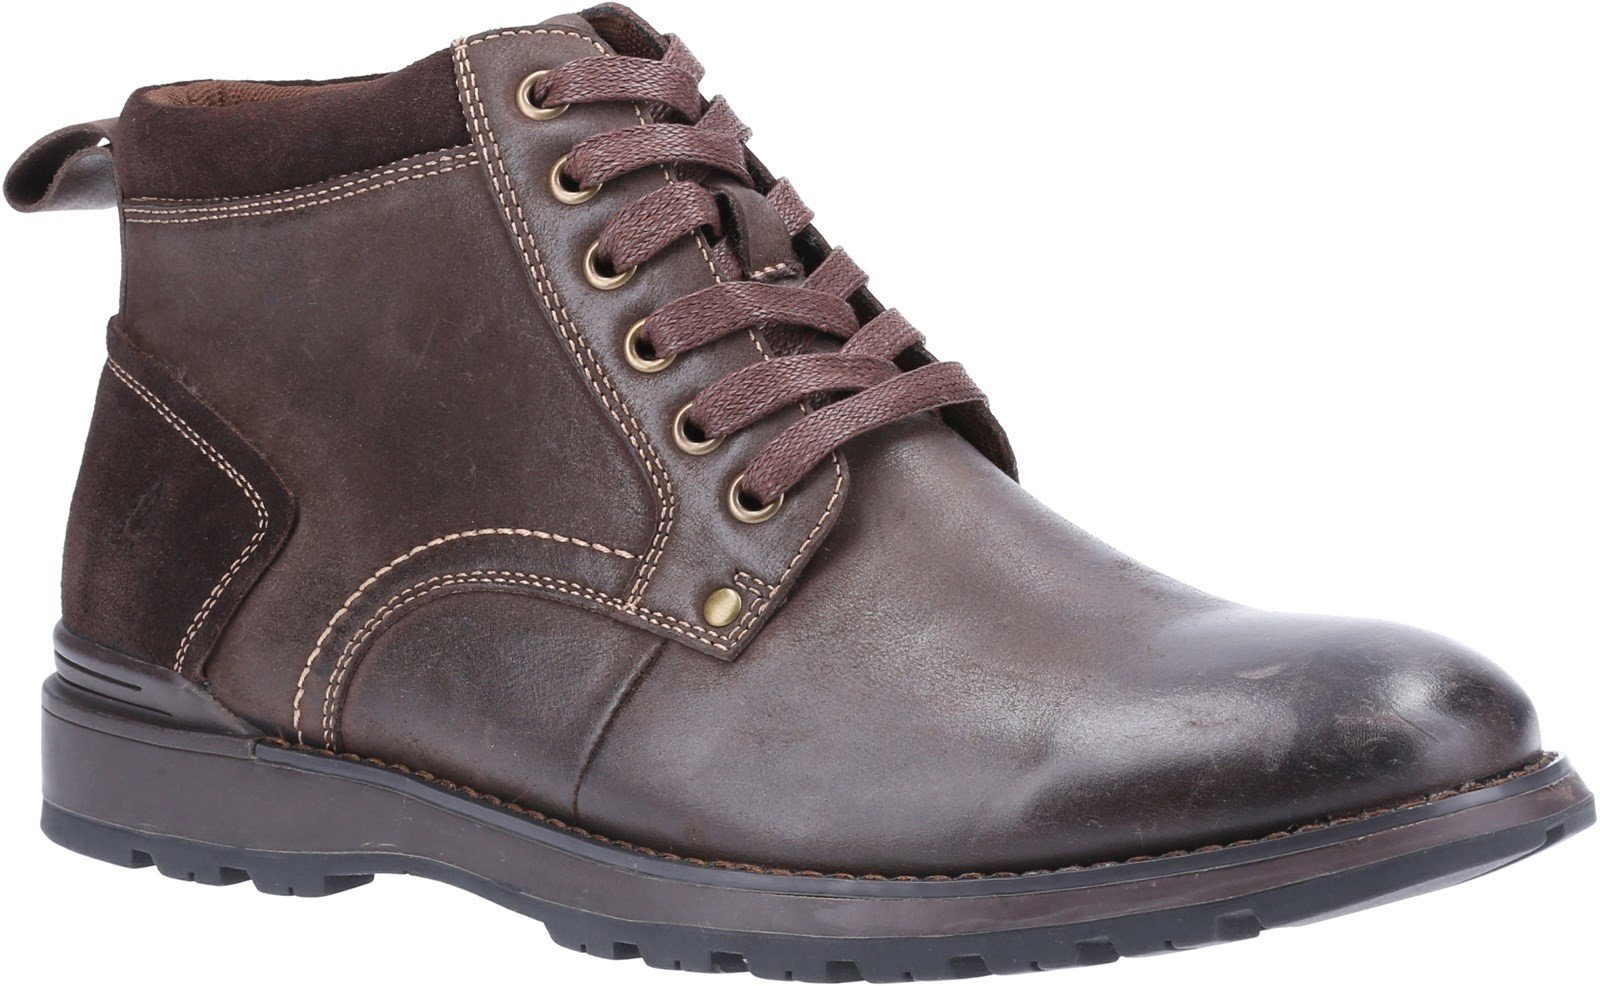 Hush Puppies Men's Dean Lace Up Boot Various Colours 31281 - Brown 6